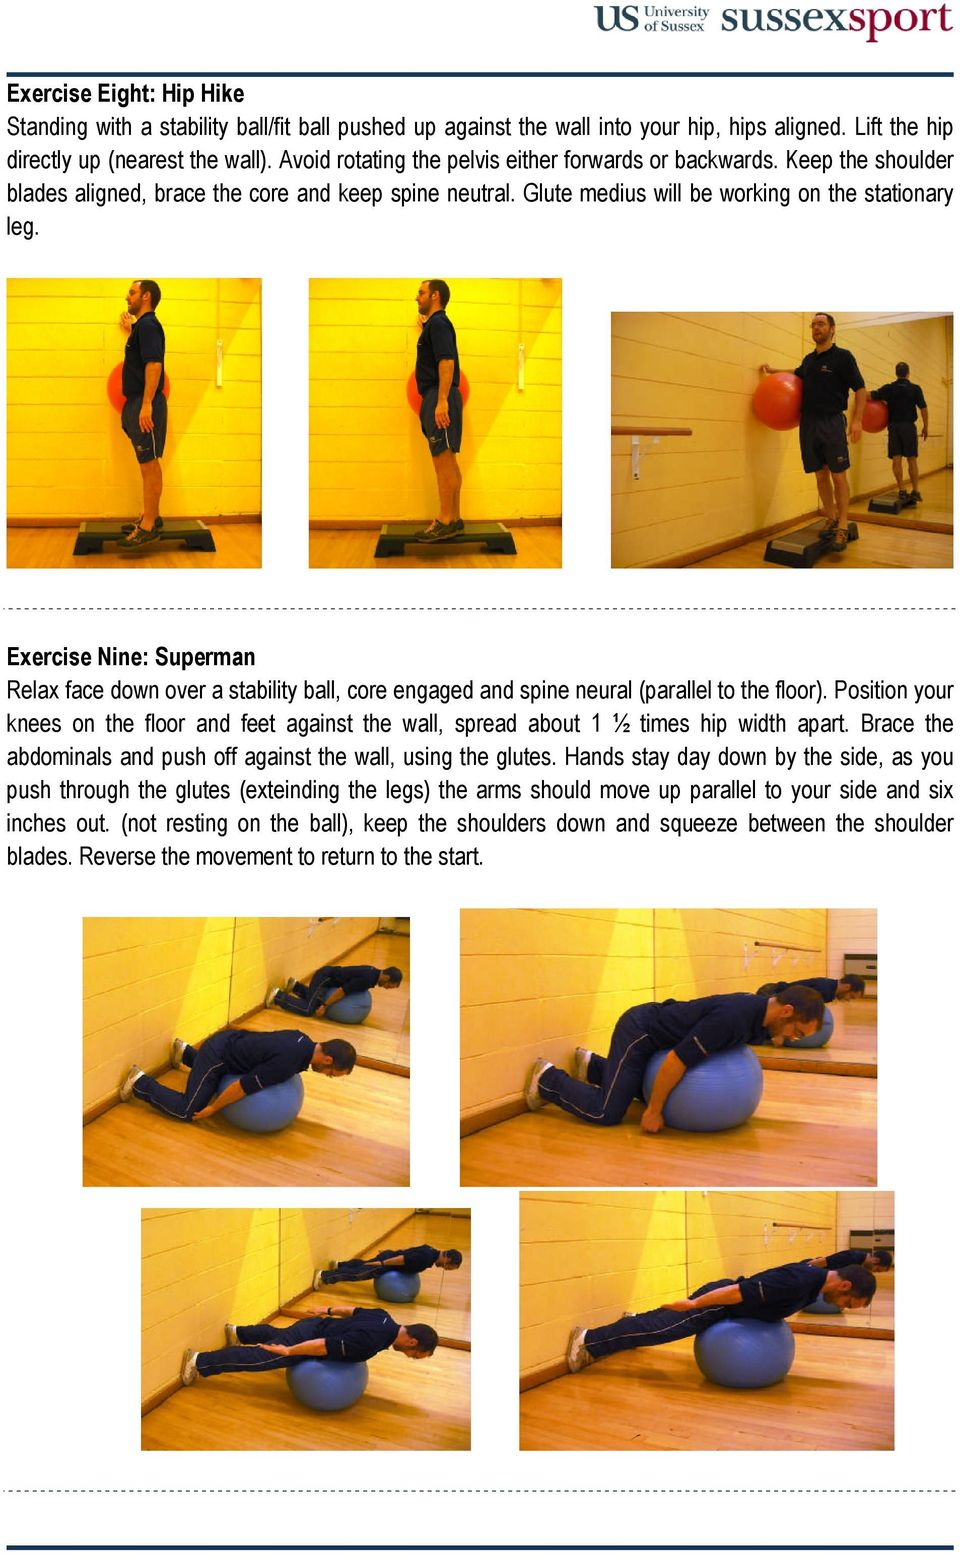 Exercise Nine: Superman Relax face down over a stability ball, core engaged and spine neural (parallel to the floor).